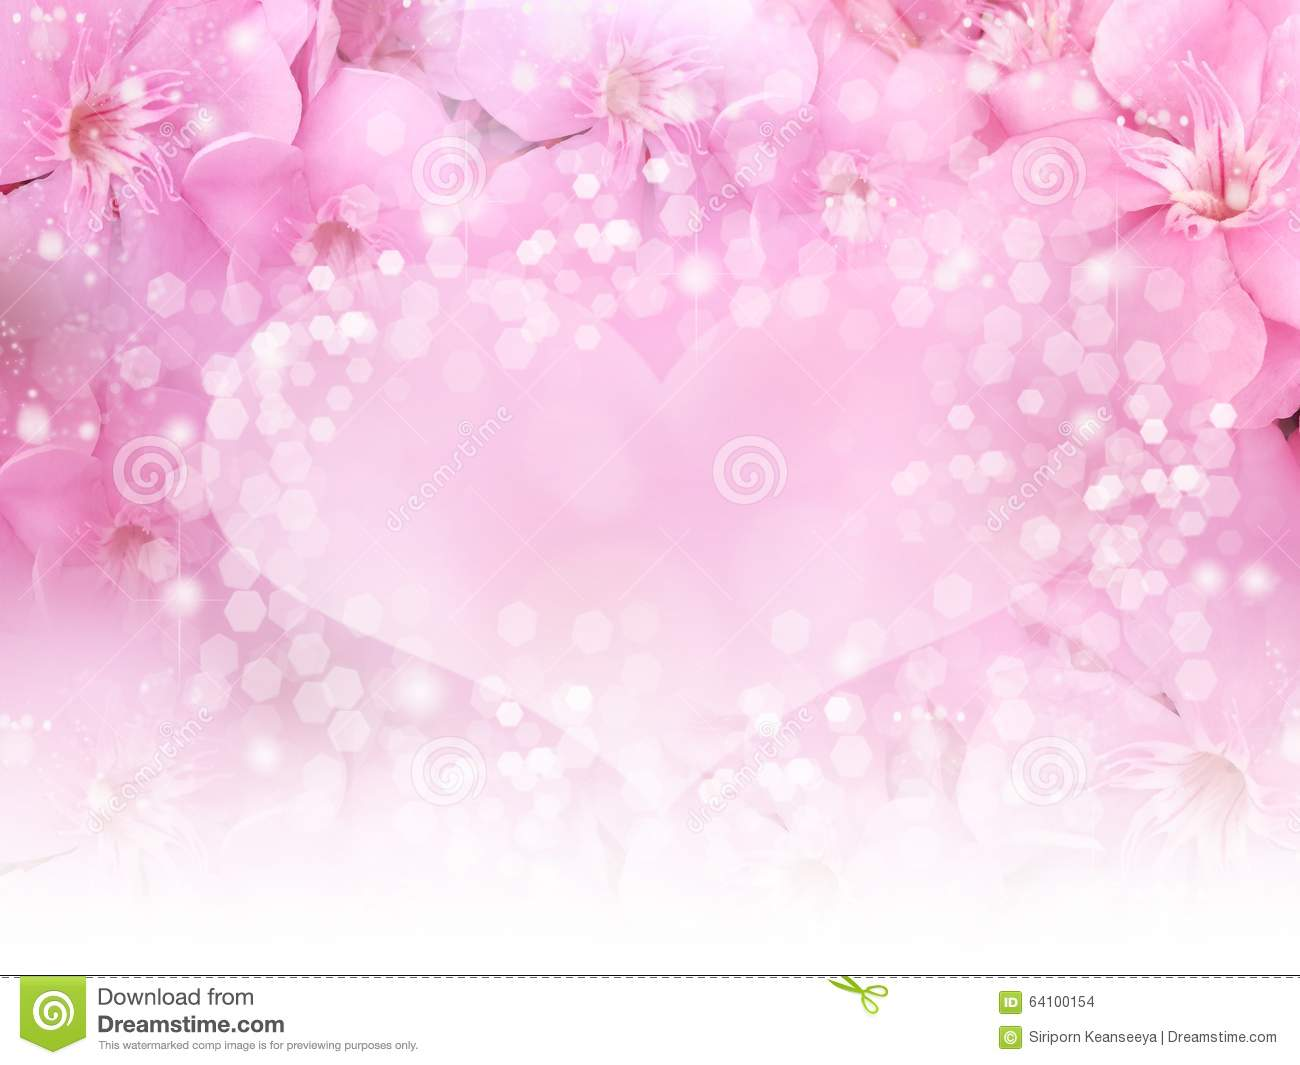 Pink Flower Border And Heart Bokeh Background For Wedding Card Or